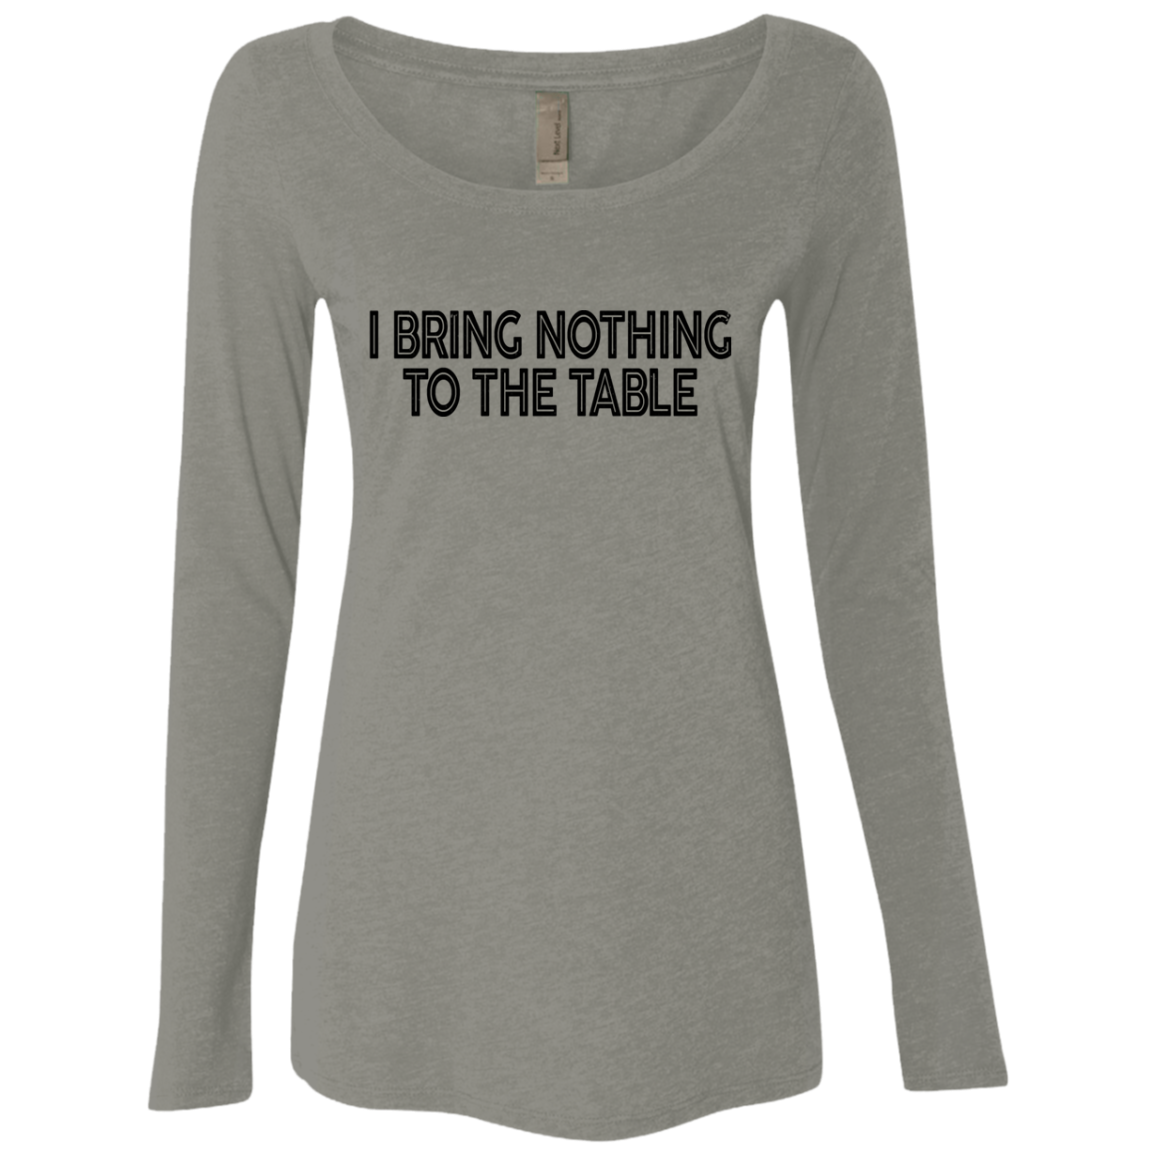 I Bring Nothing to the Table Women's Long Sleeve Tee